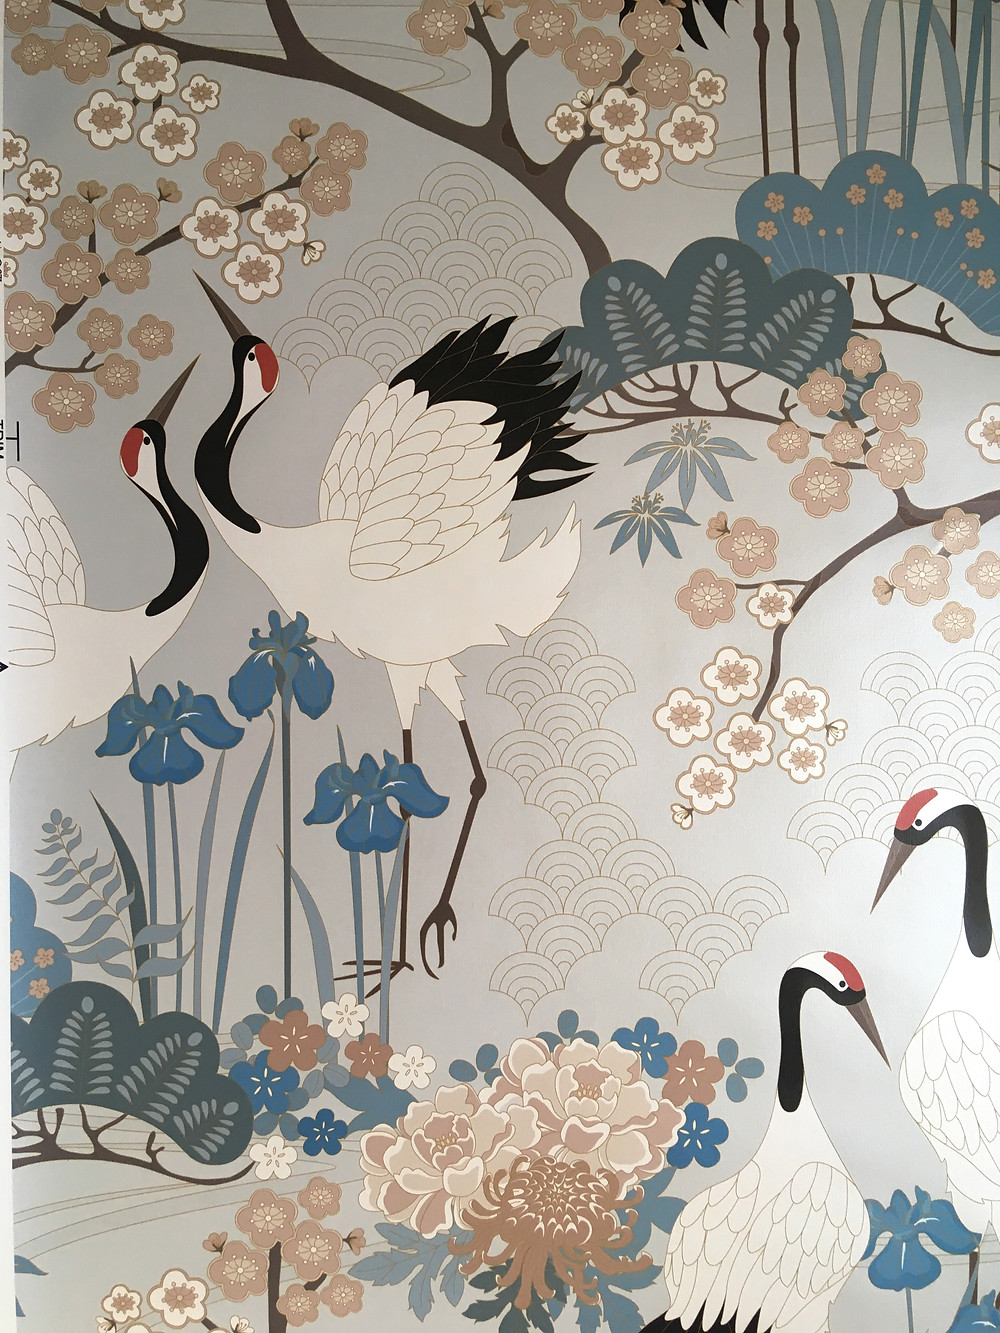 Japanese Garden in Gray Wallpaper from Judit Gueth Design in Toronto